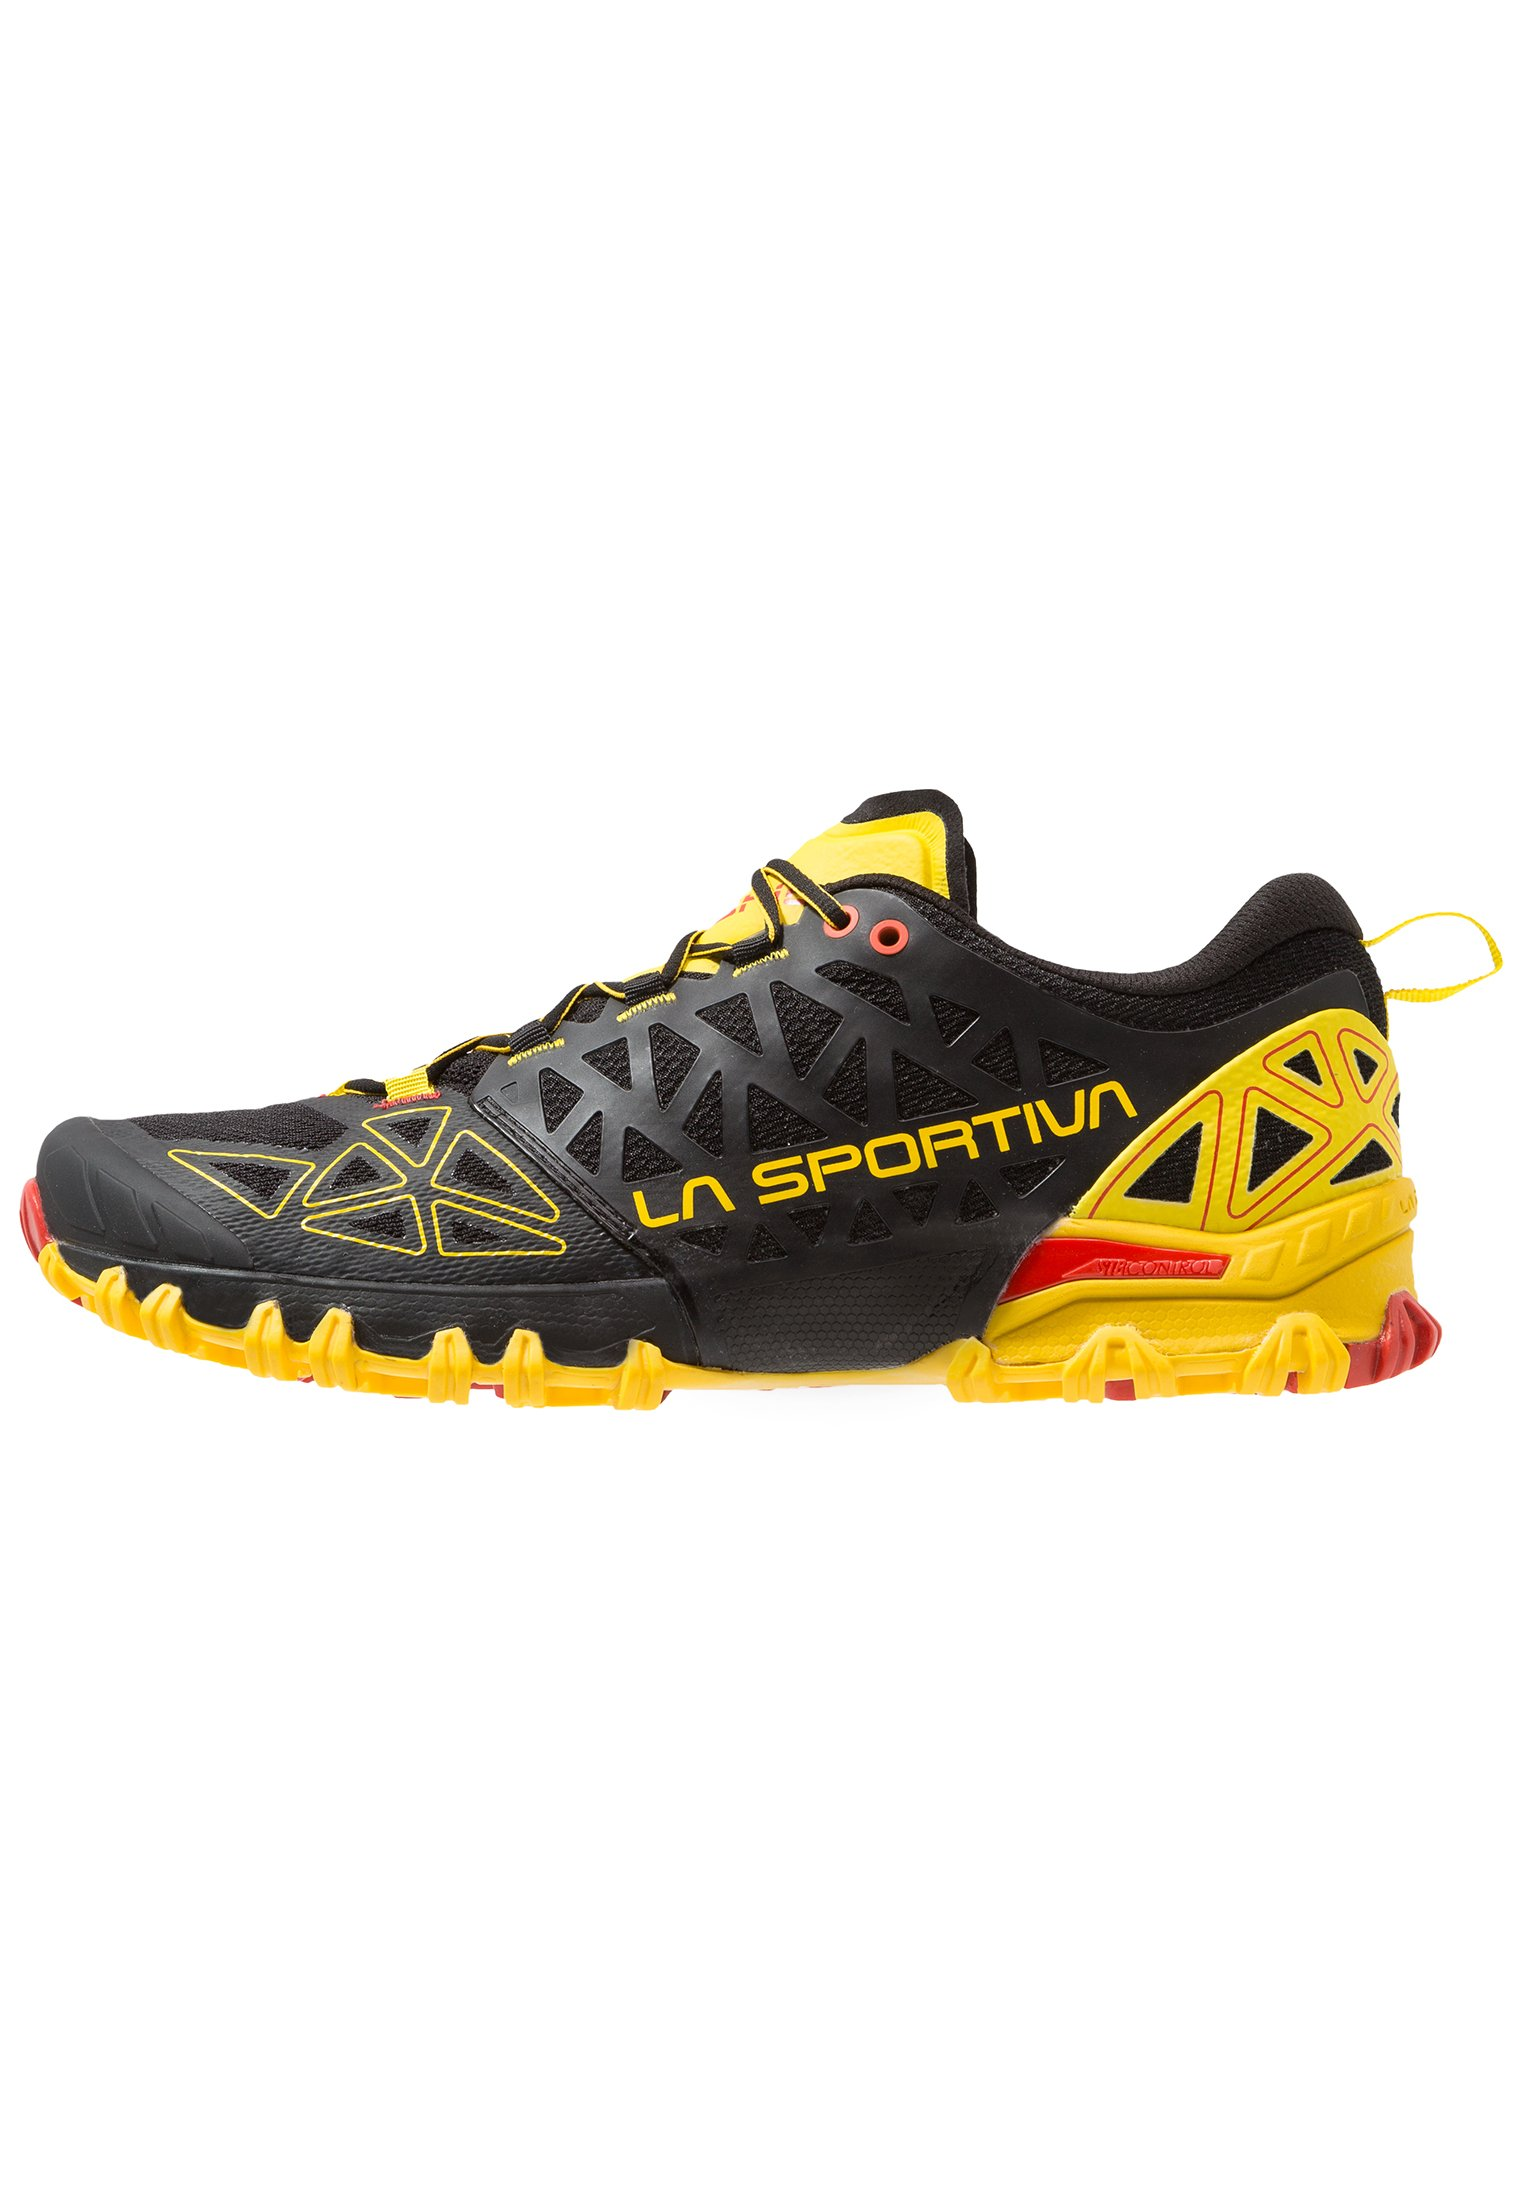 BUSHIDO II Scarpe da trail running blackyellow